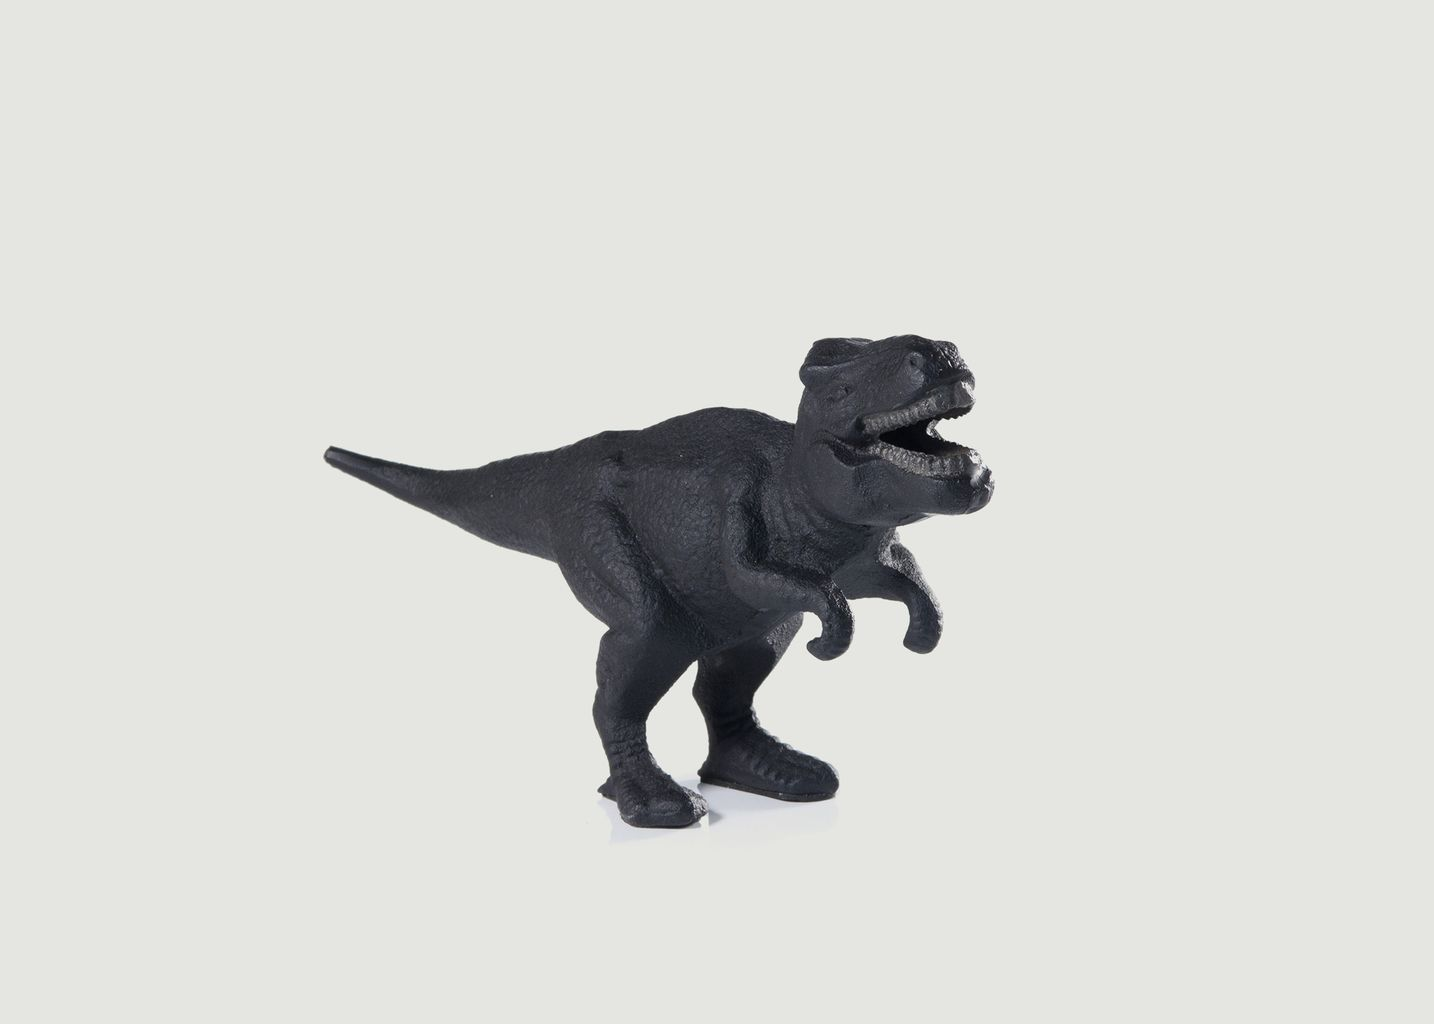 Ouvre-bouteille dinosaure - Suck UK